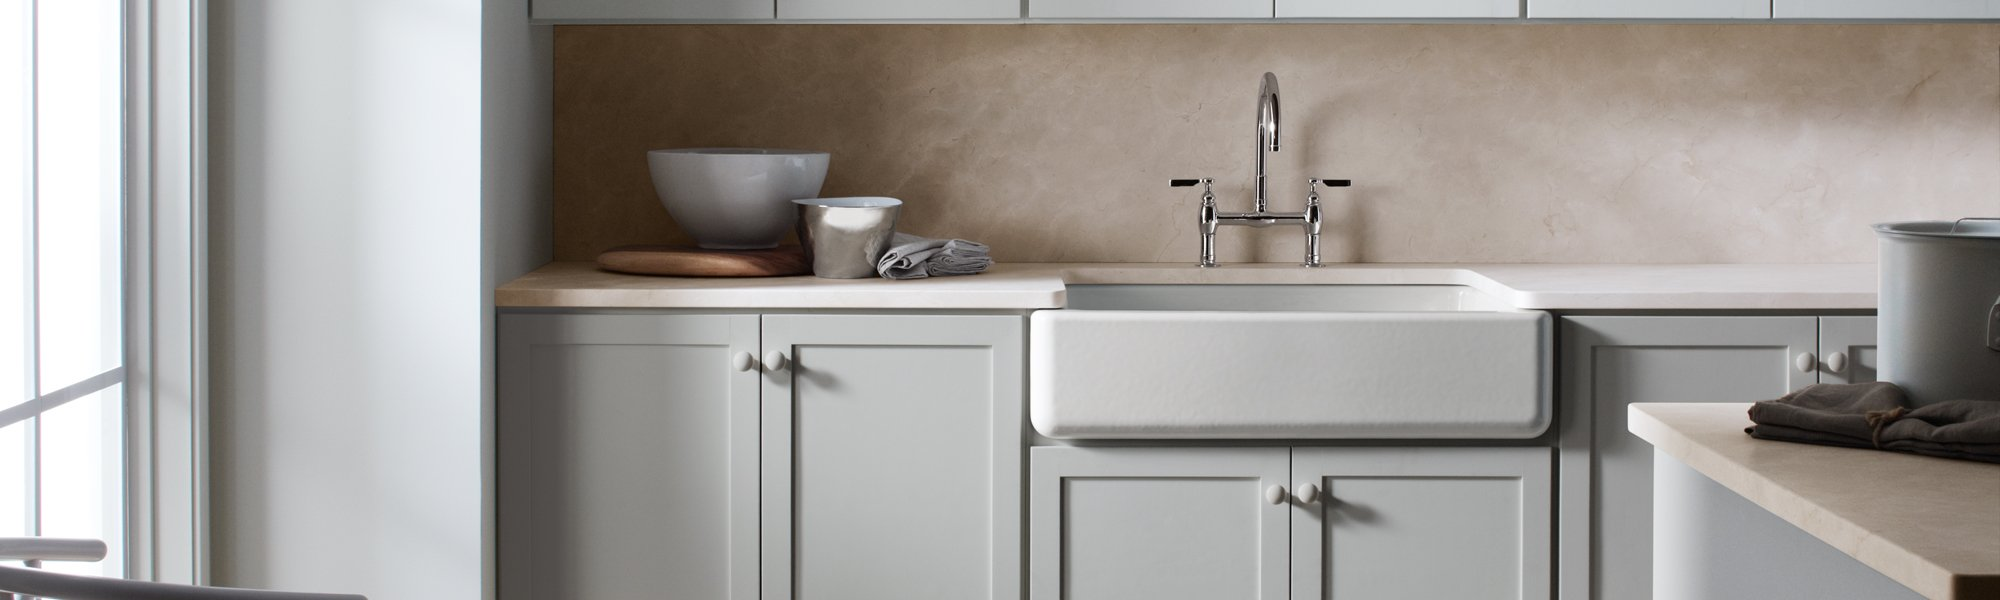 6 Best Farmhouse Sinks Dec 2020 Reviews Buying Guide